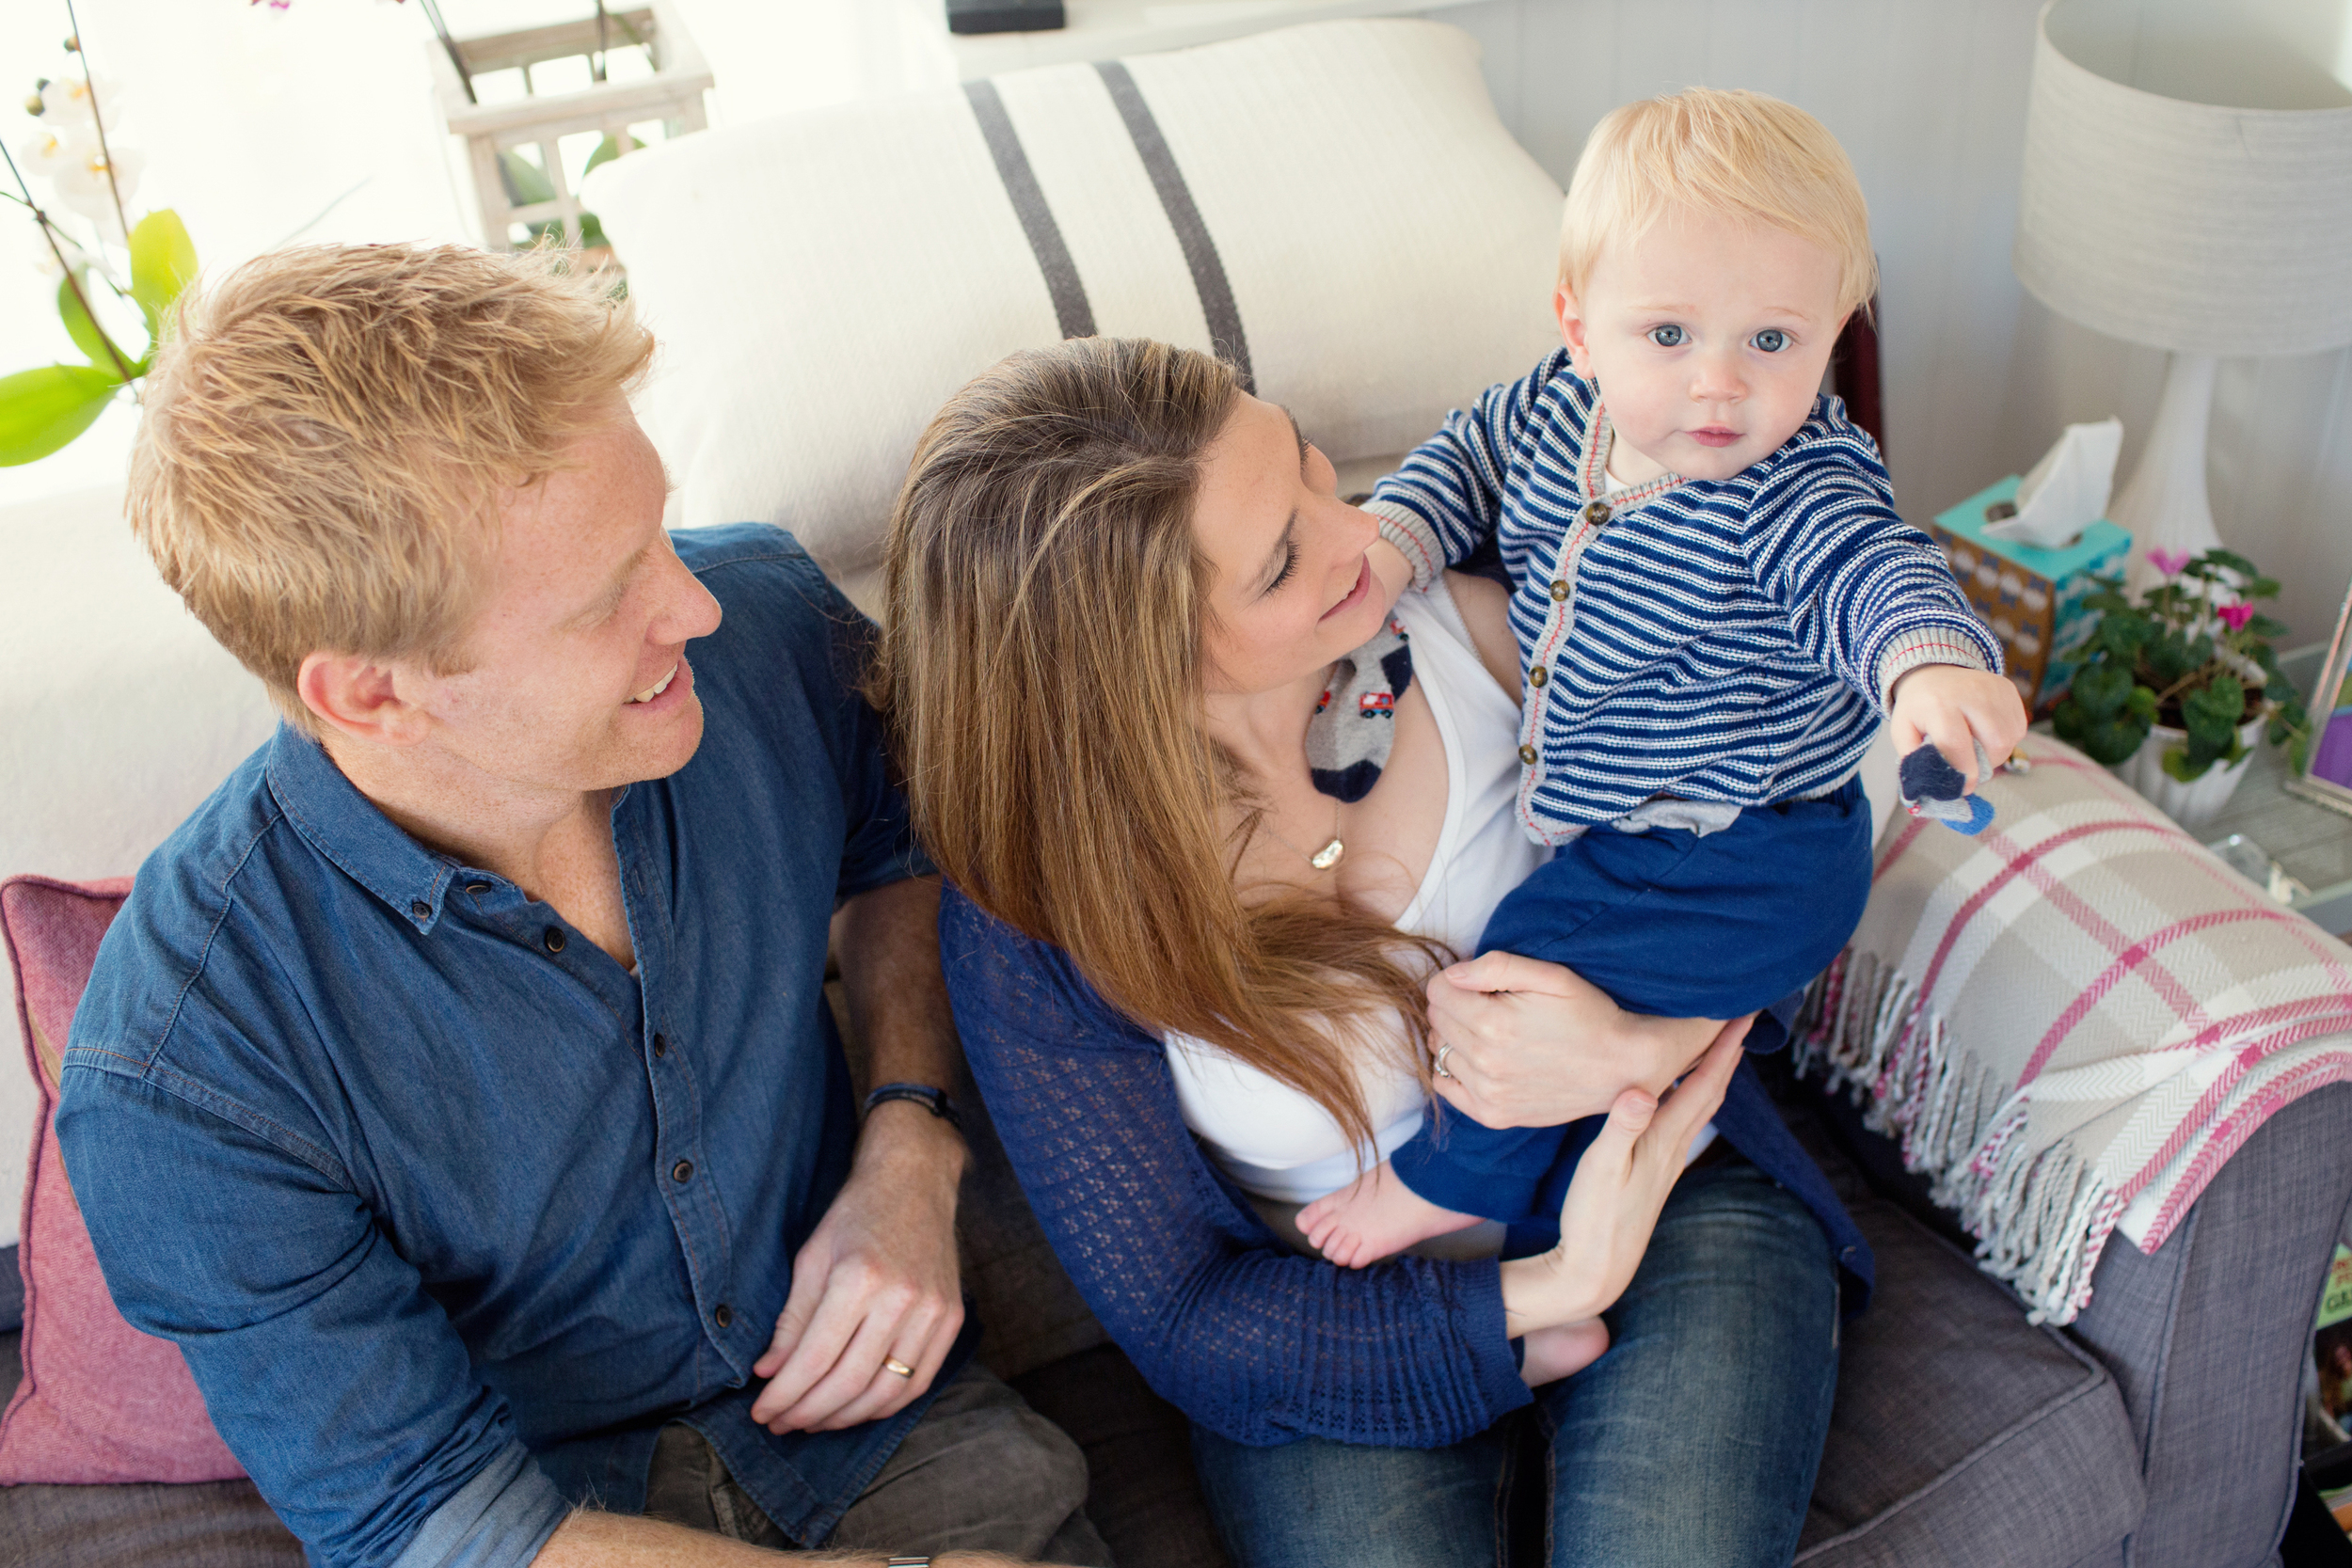 Lisa, Will & Louis_Sophie Evans photograpy, At home family shoot_141.jpg